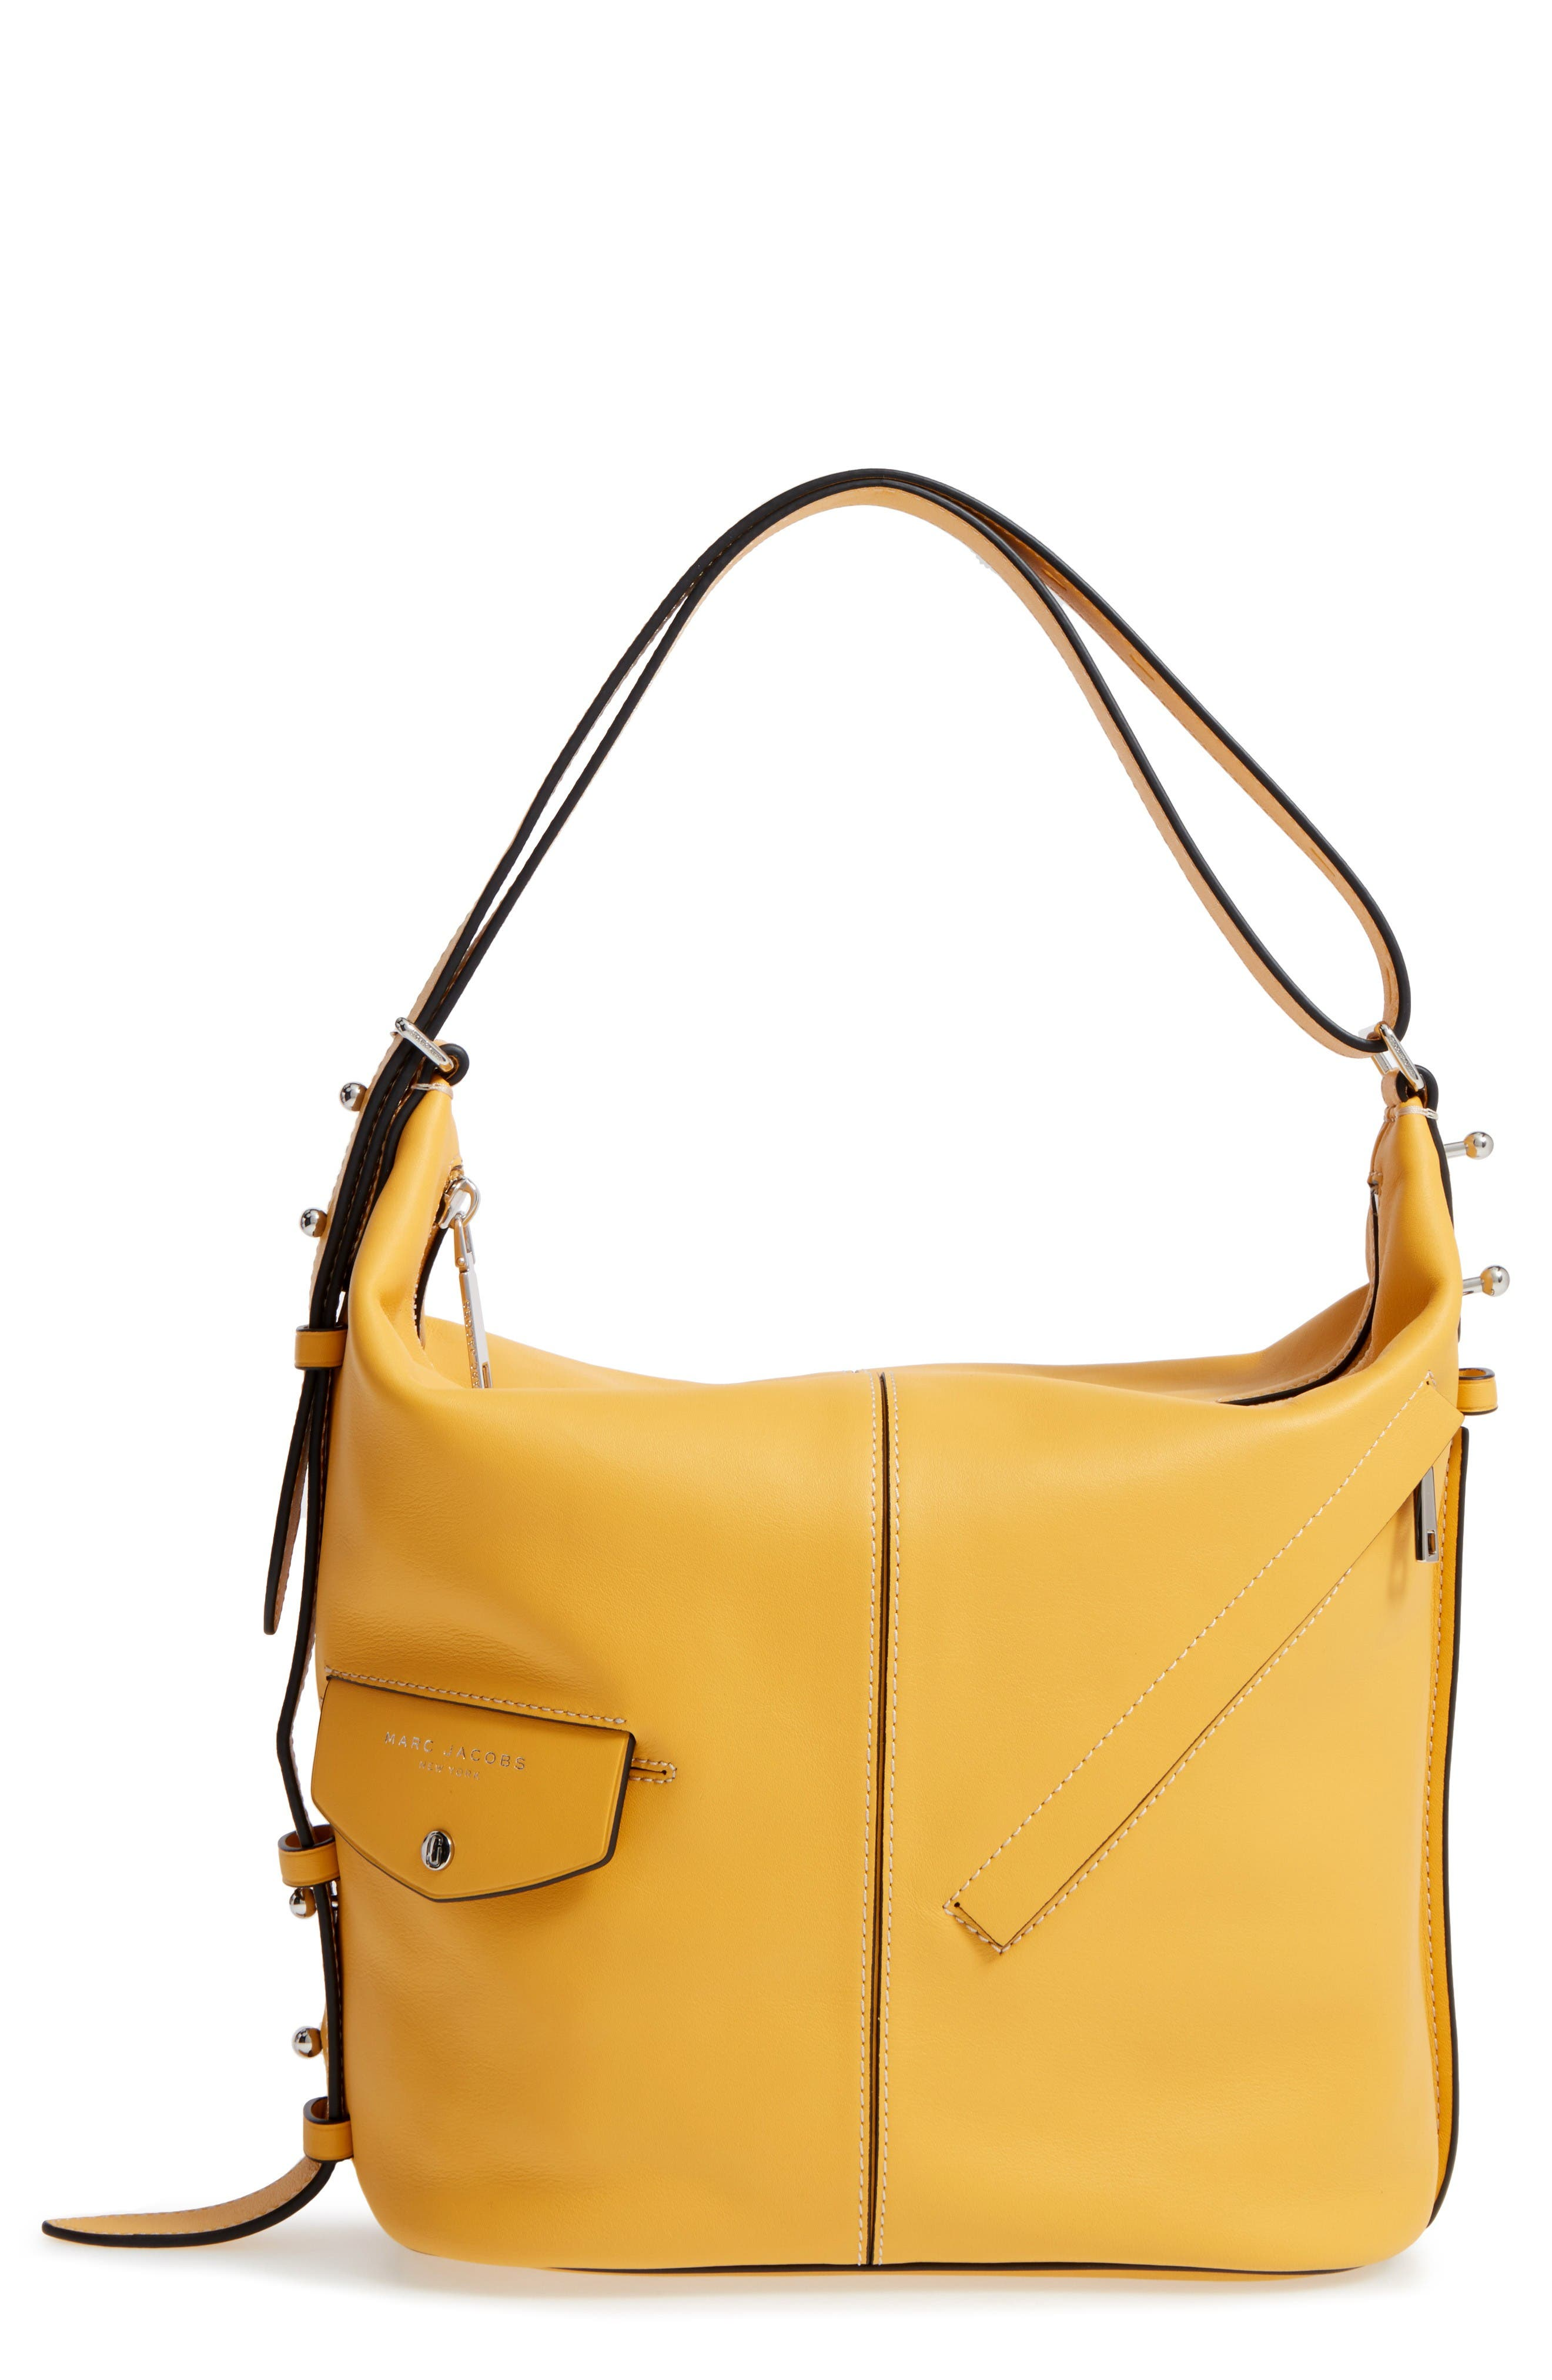 MARC JACOBS The Sling Convertible Leather Hobo